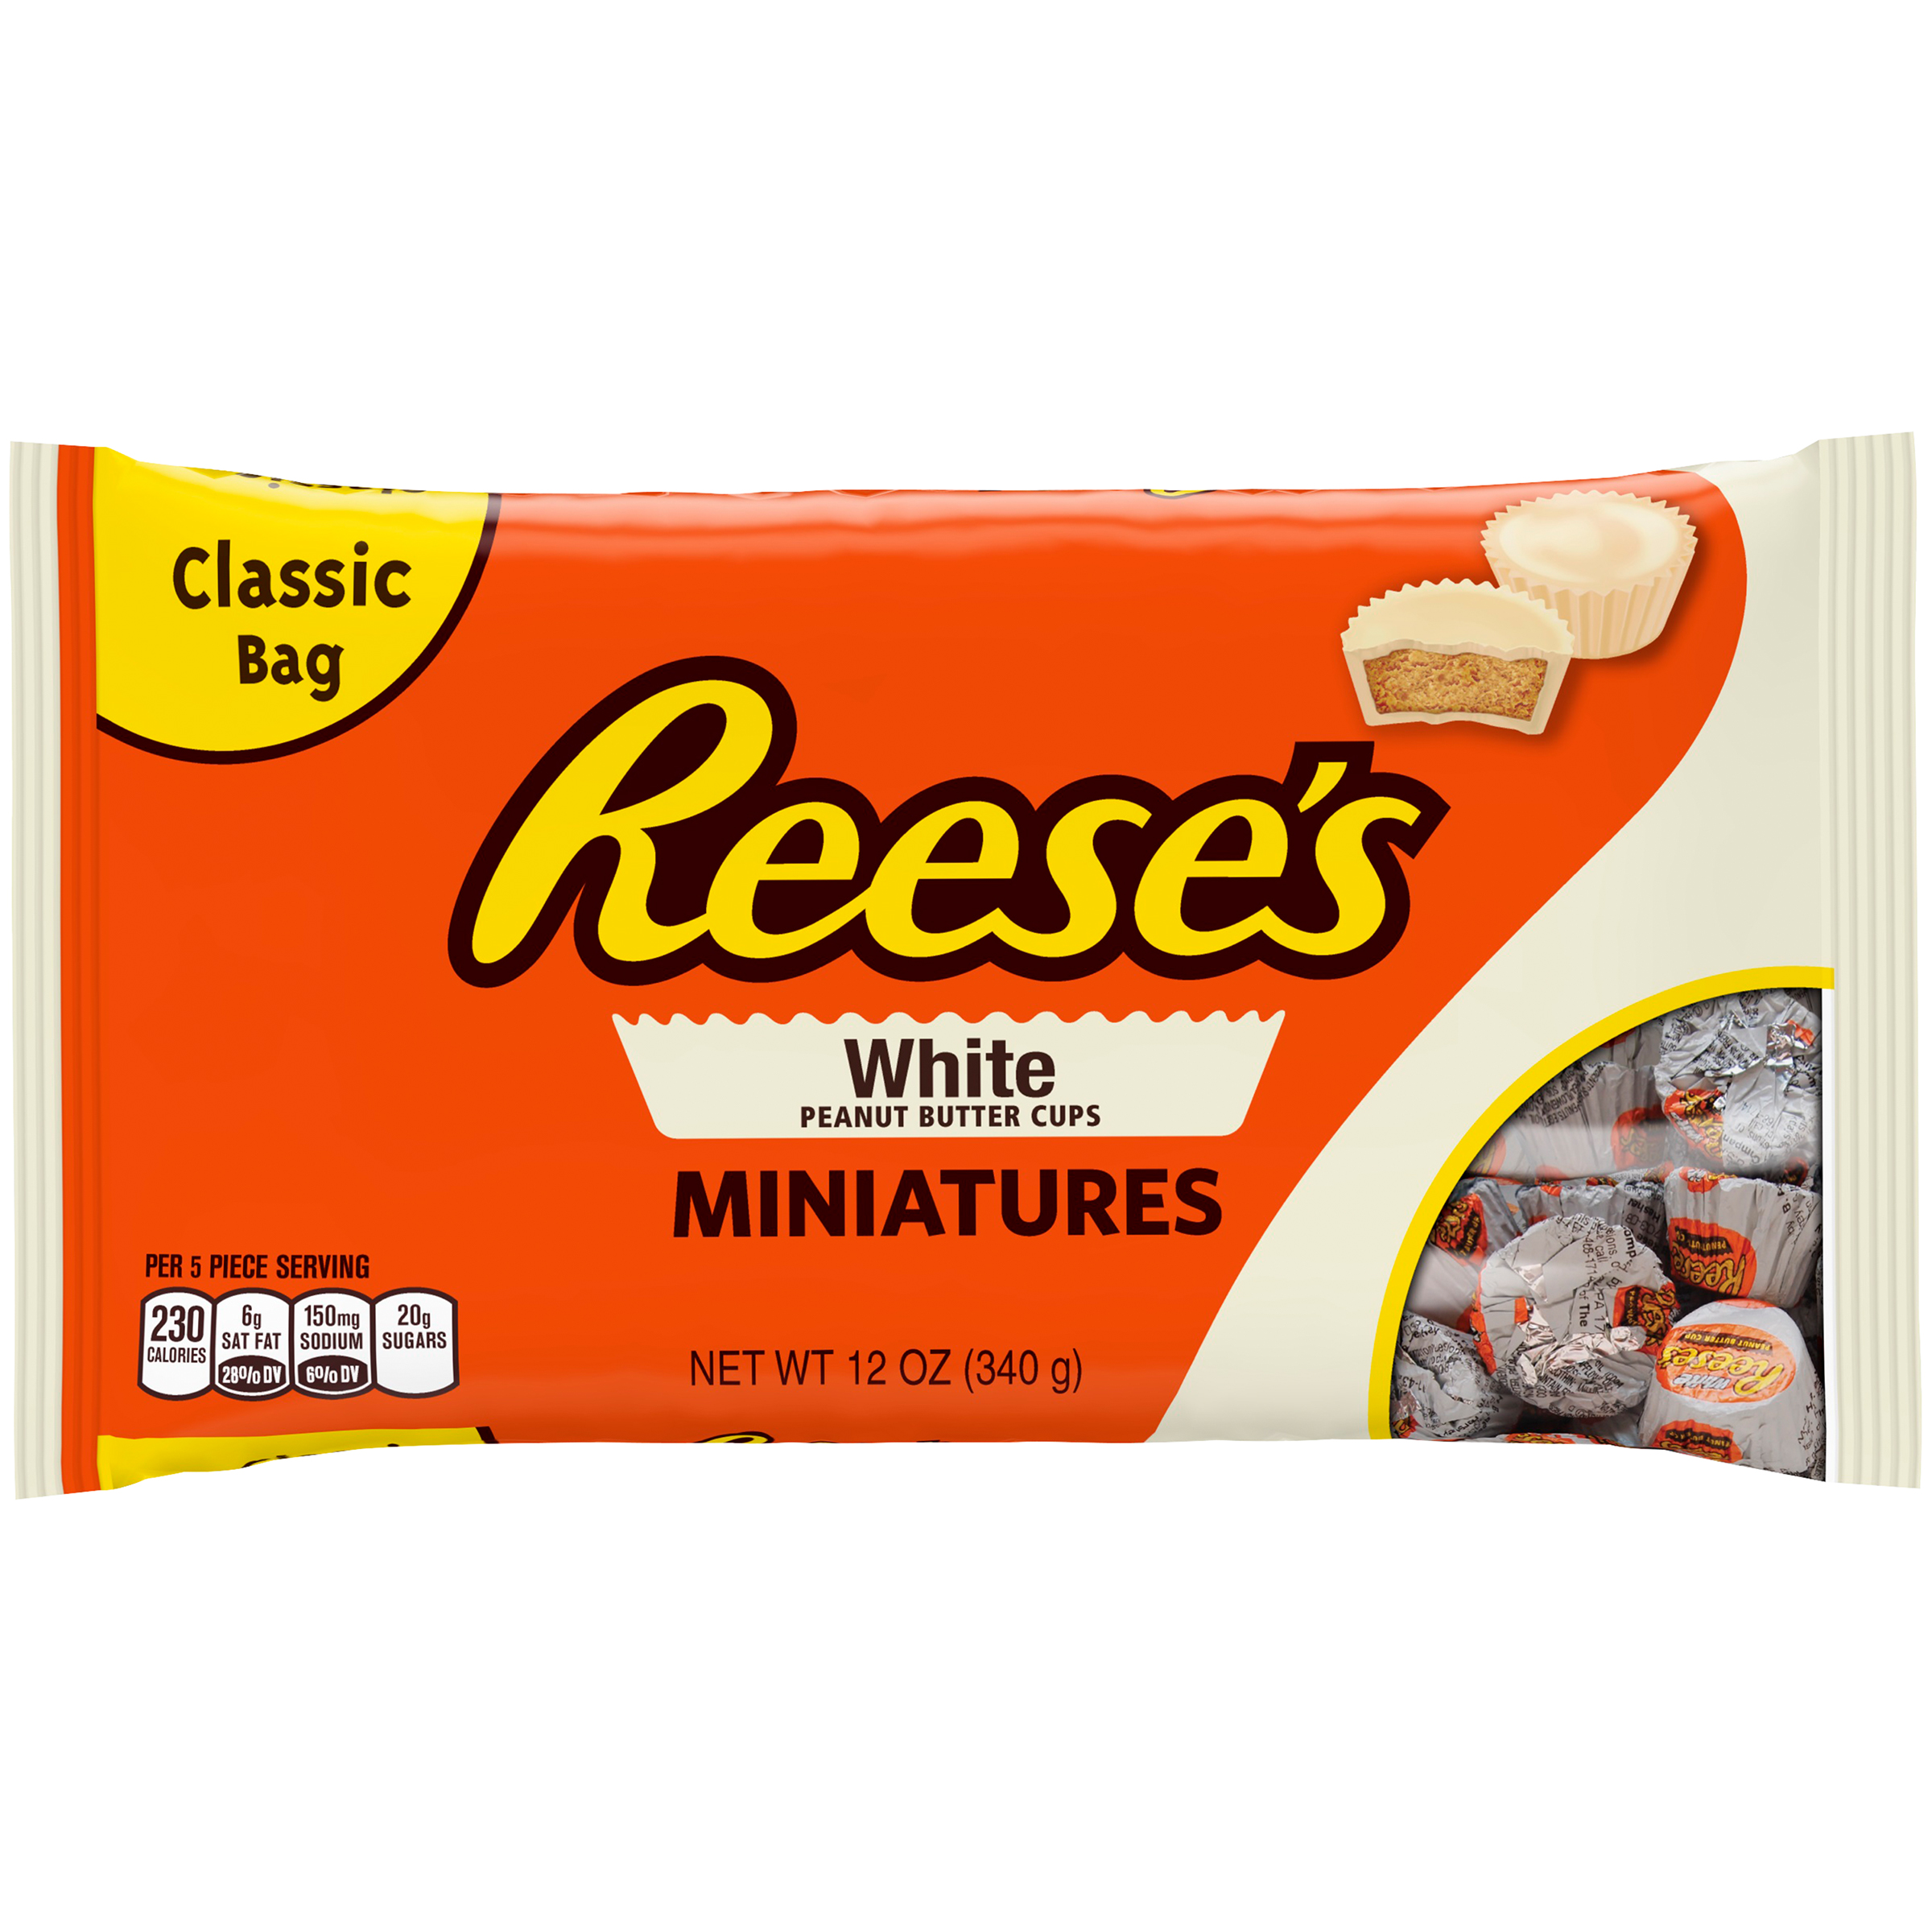 REESE'S White Peanut Butter Cups Miniatures, 12 oz